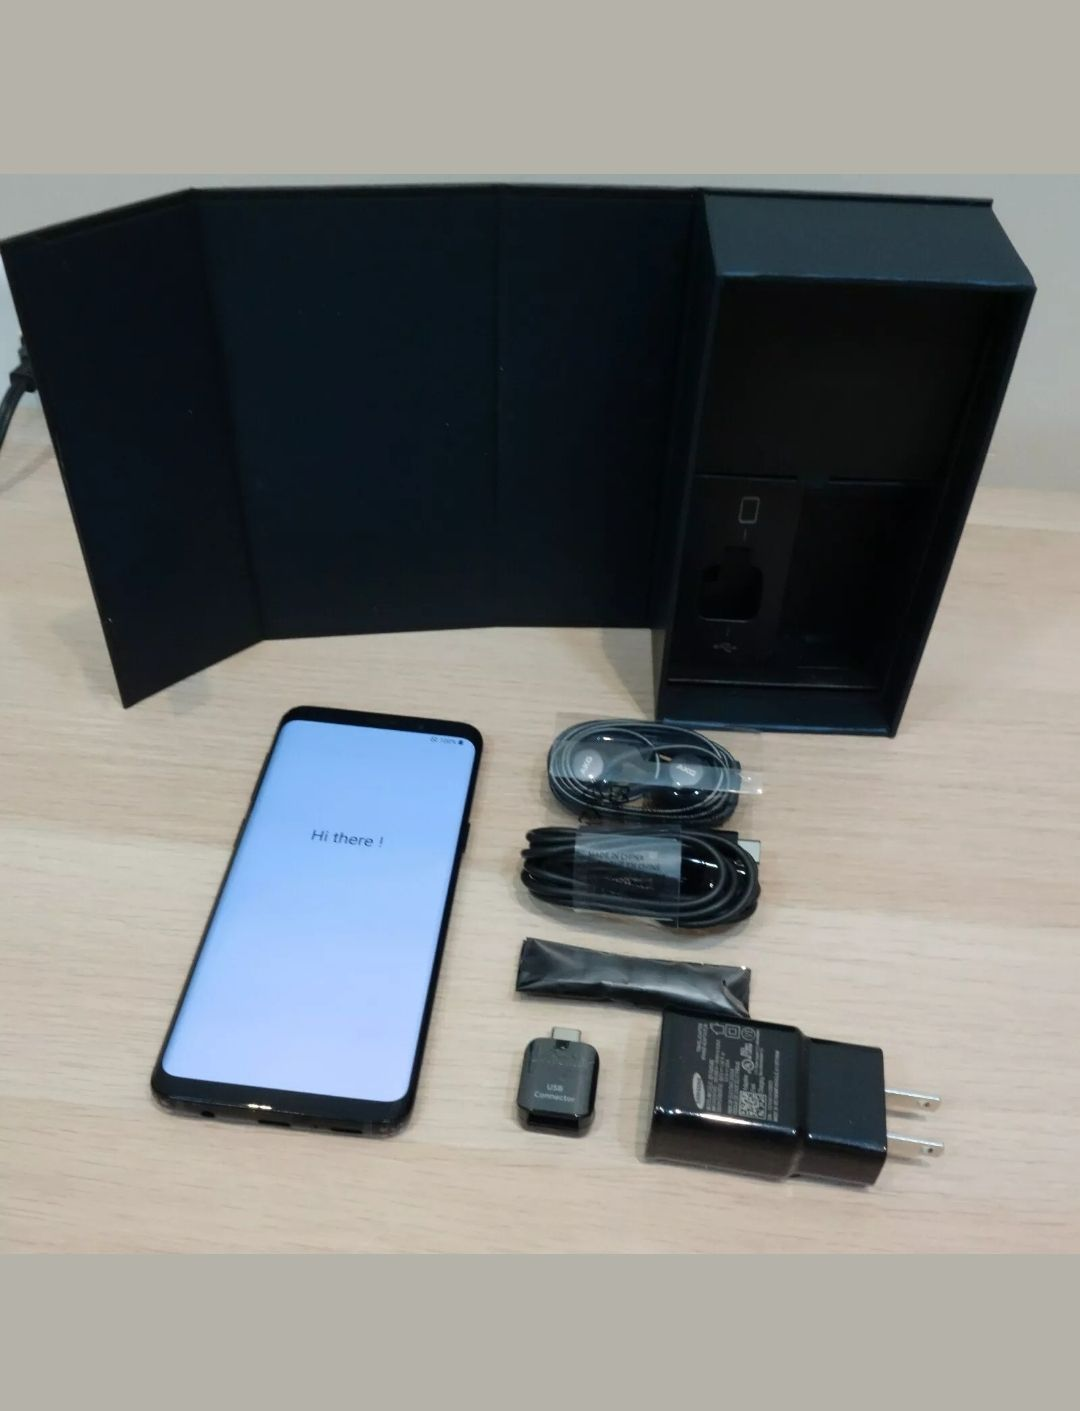 Samsung Galaxy S9 Perfect Condition No Cracks Scratches Or Defects Included With Purchase Samsung Galaxy S9 W Samsung Galaxy S9 Samsung Samsung Galaxy